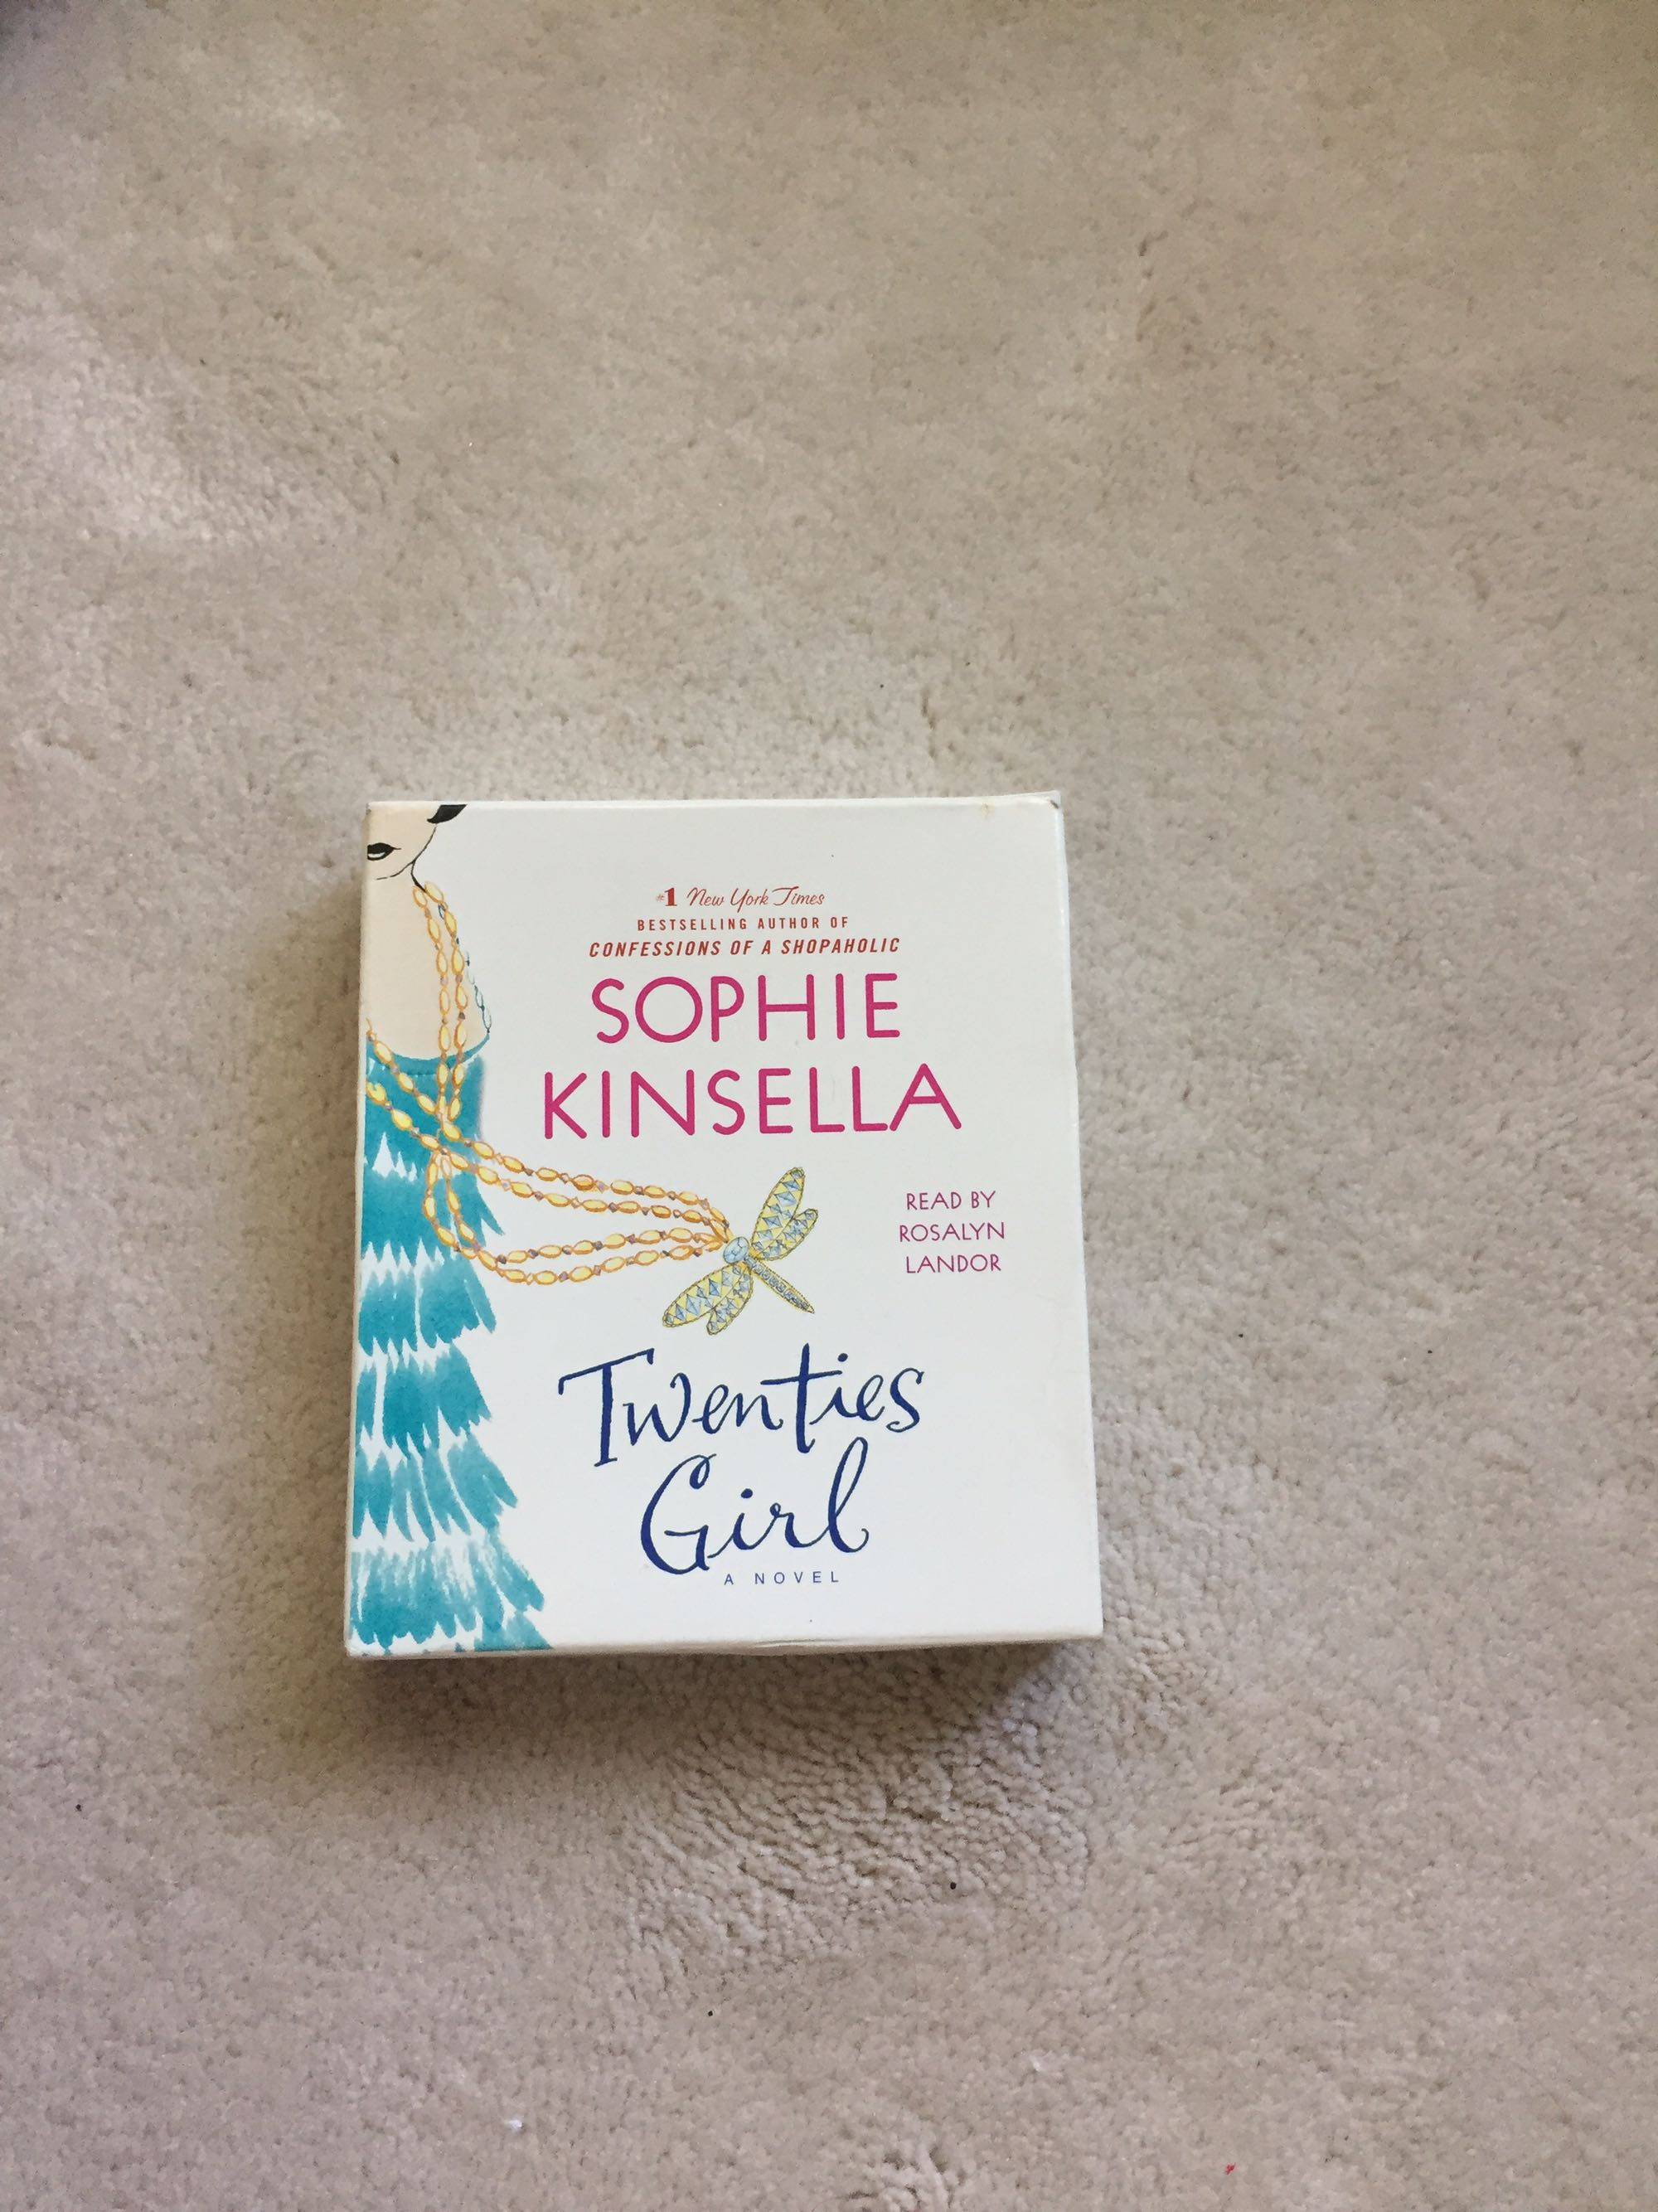 Twenties Girl audiobook by Sophie Kinsella